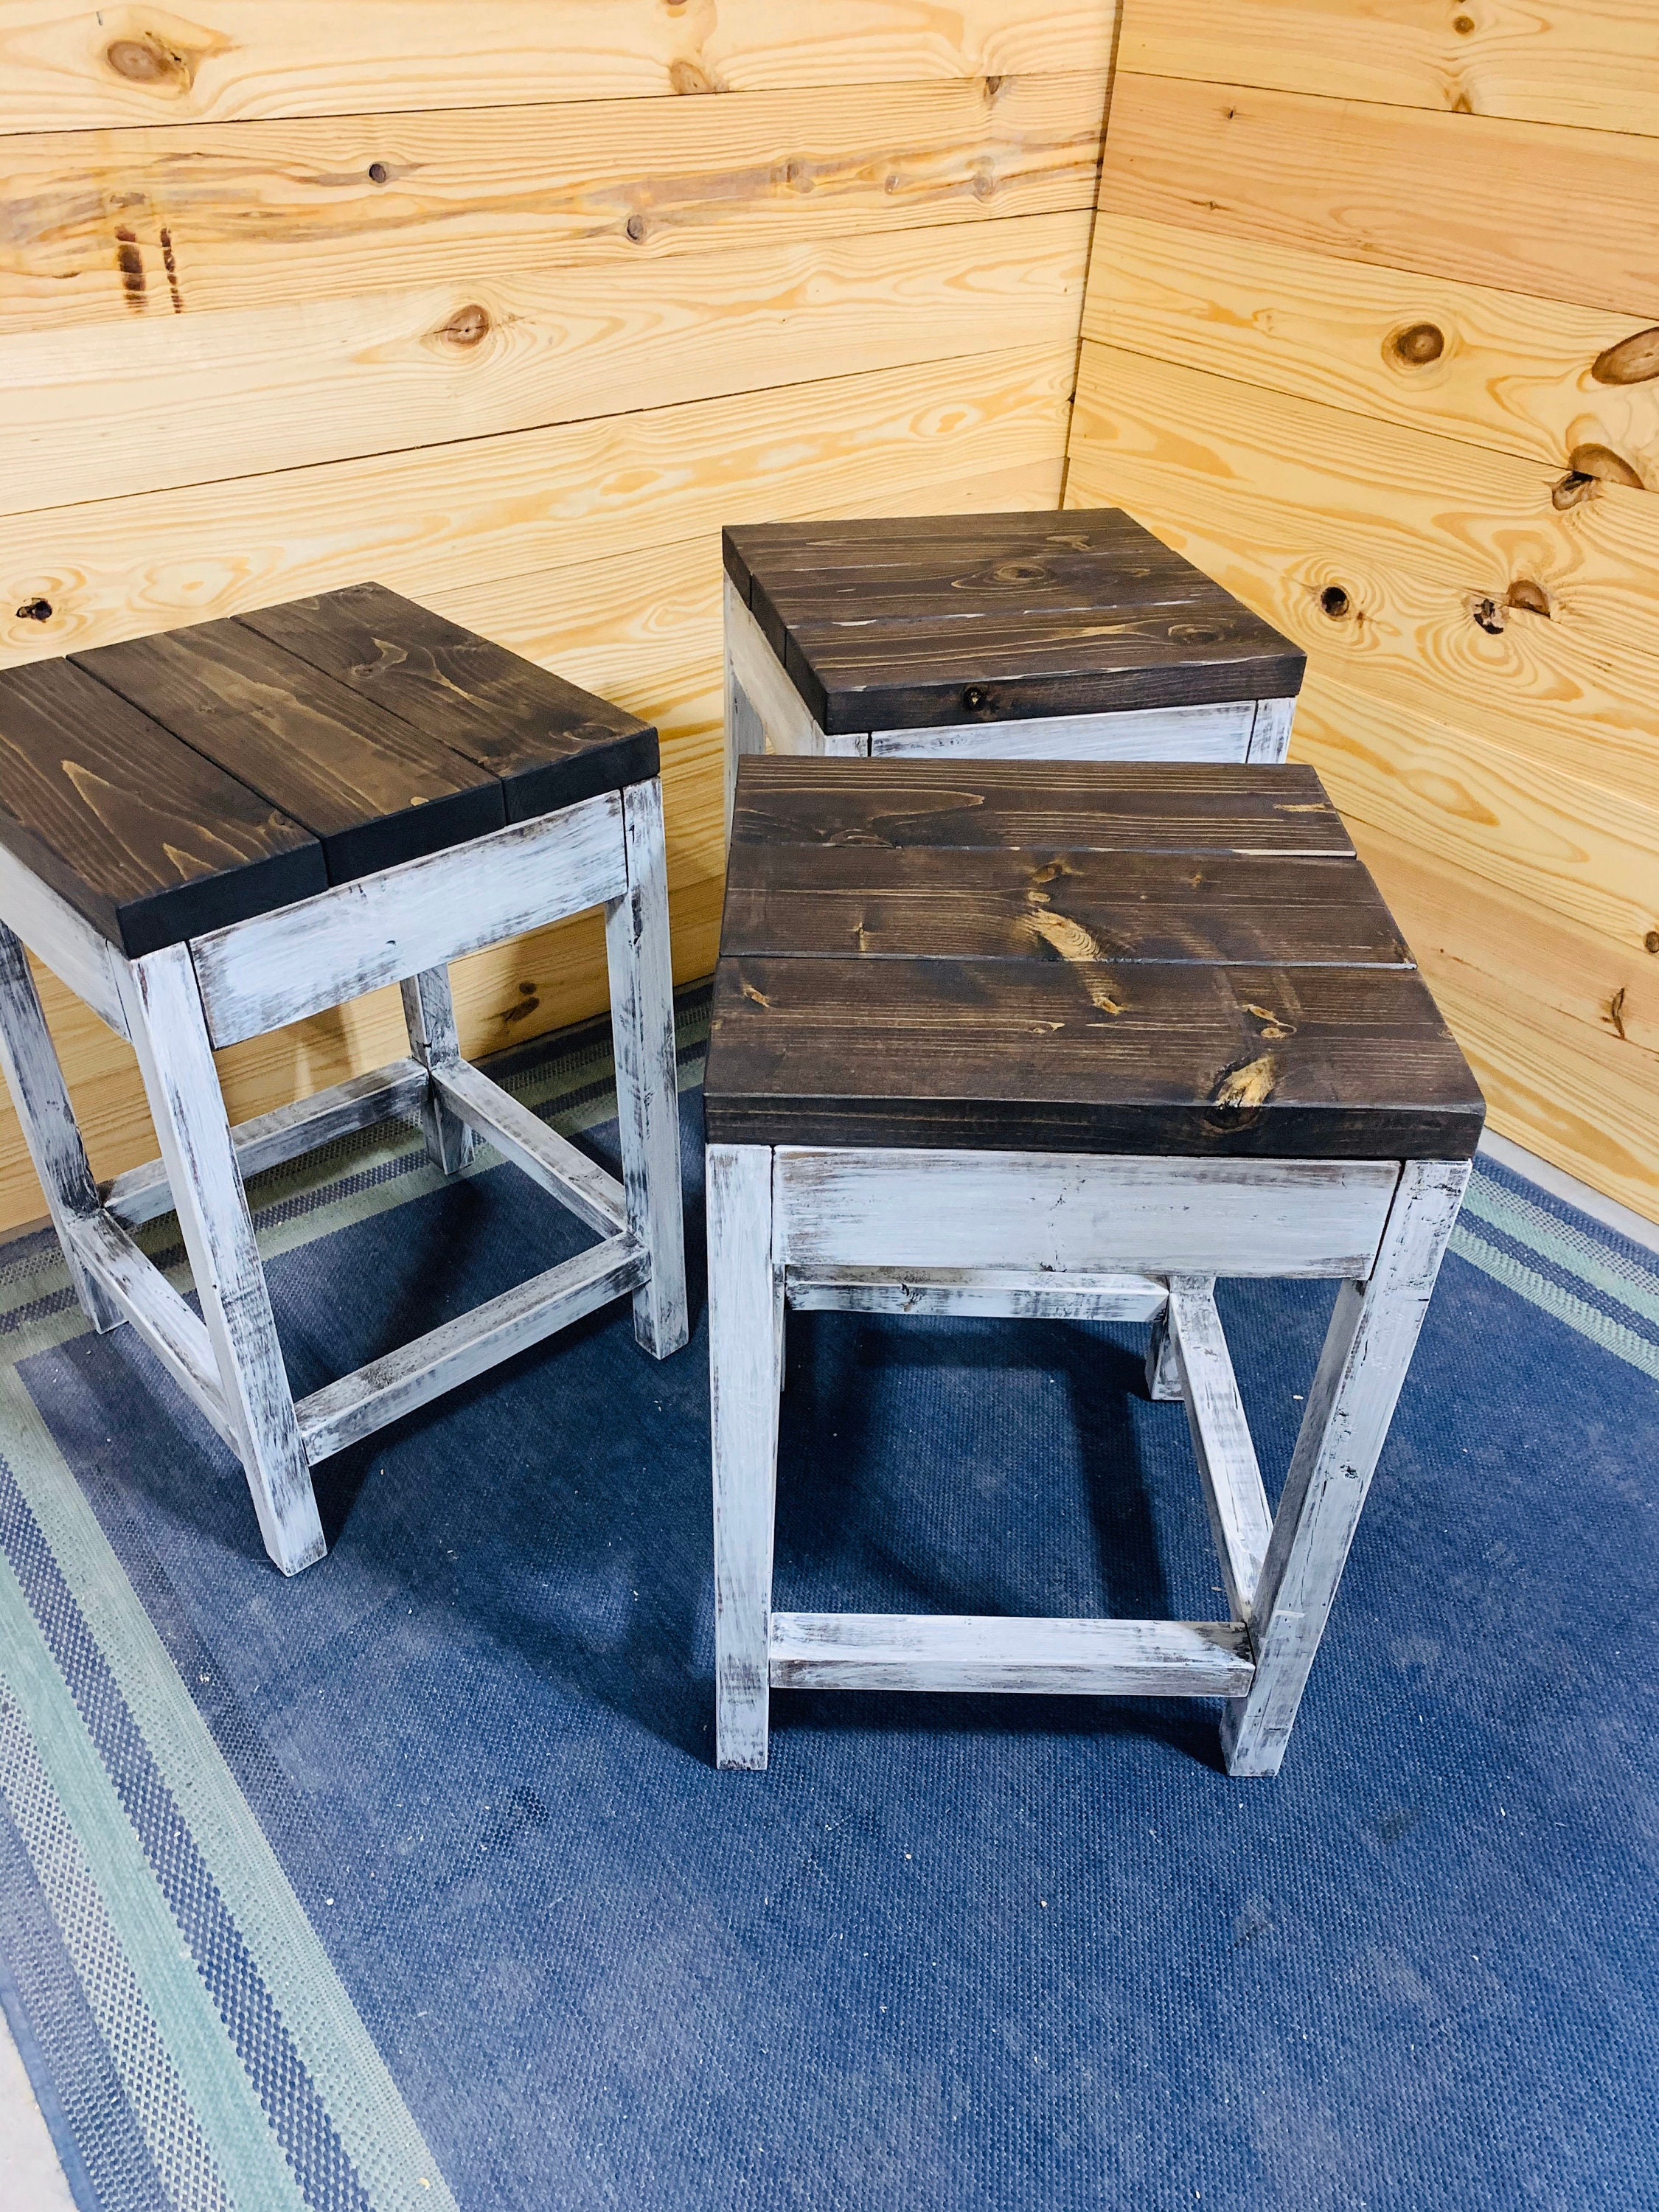 Rustic Farmhouse Counter Height Stools Espresso Brown Top And Distressed White Base Wooden Bar Stool Set For Kitchen